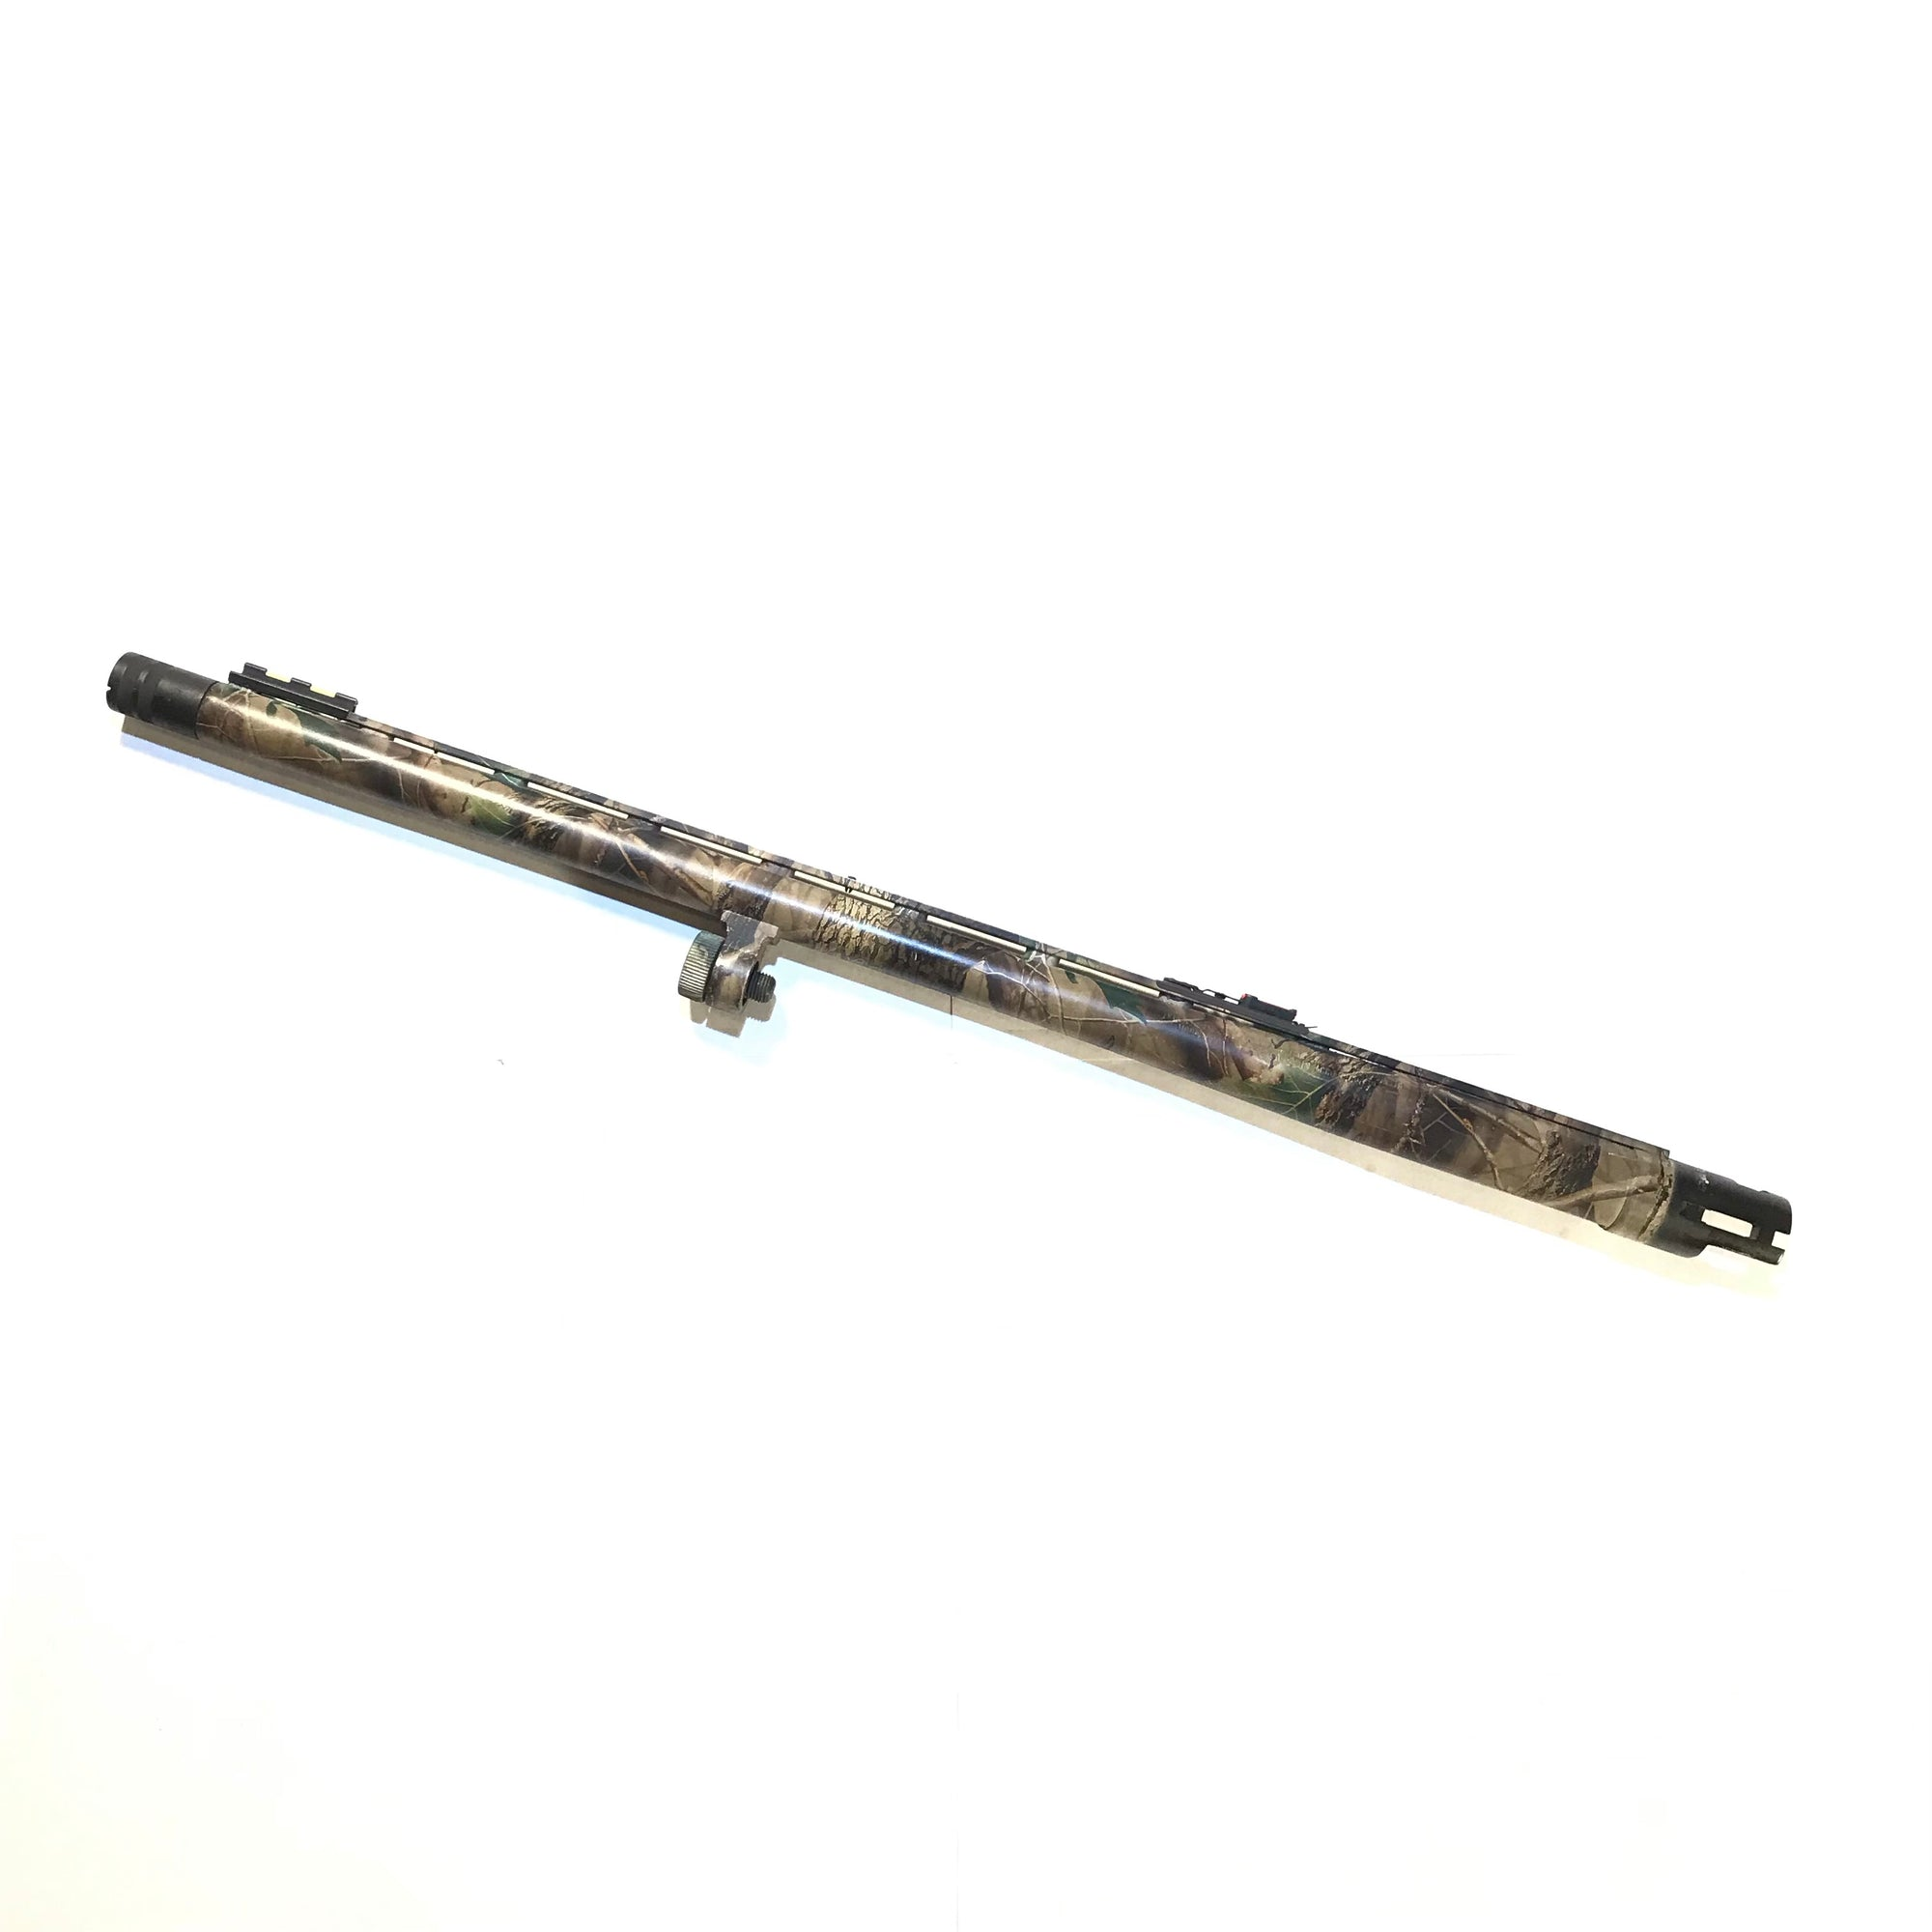 "Mossberg Model 535 12GA 3-1/2"" Accu Choke 22"" VR Camo Barrel only with Sights & Turkey Choke"